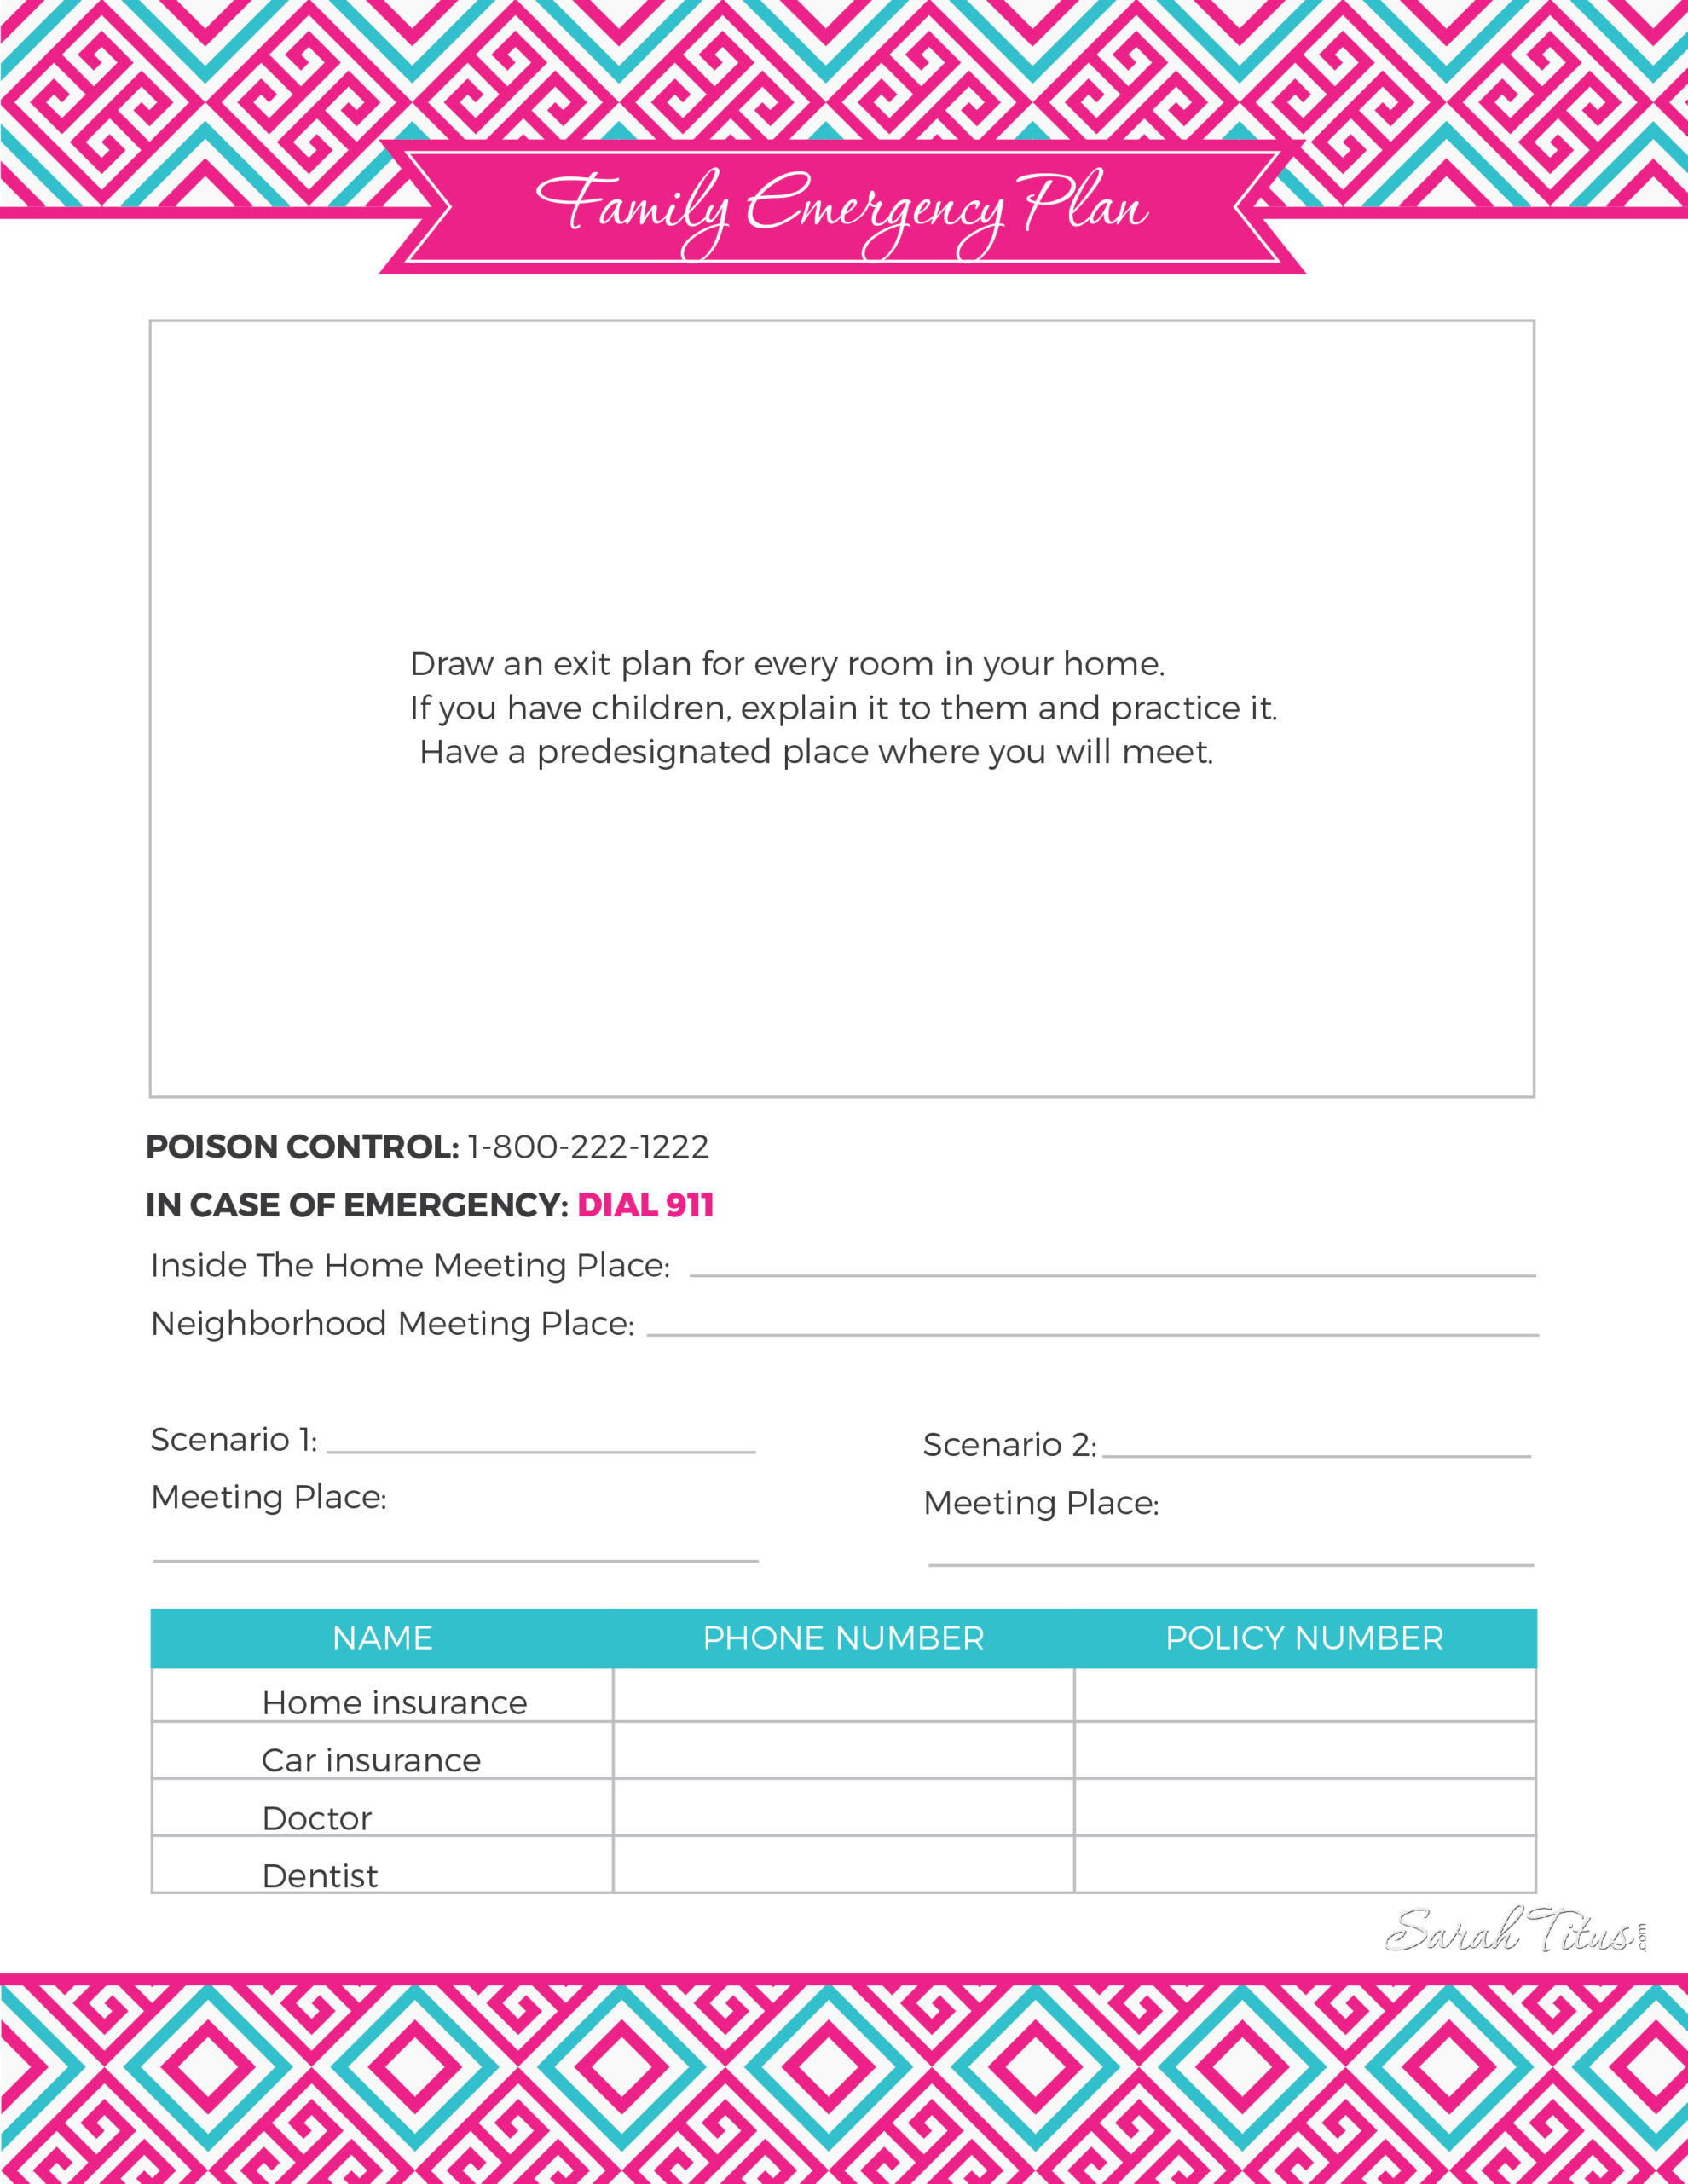 How to start an at-home daycare family emergency plan printable